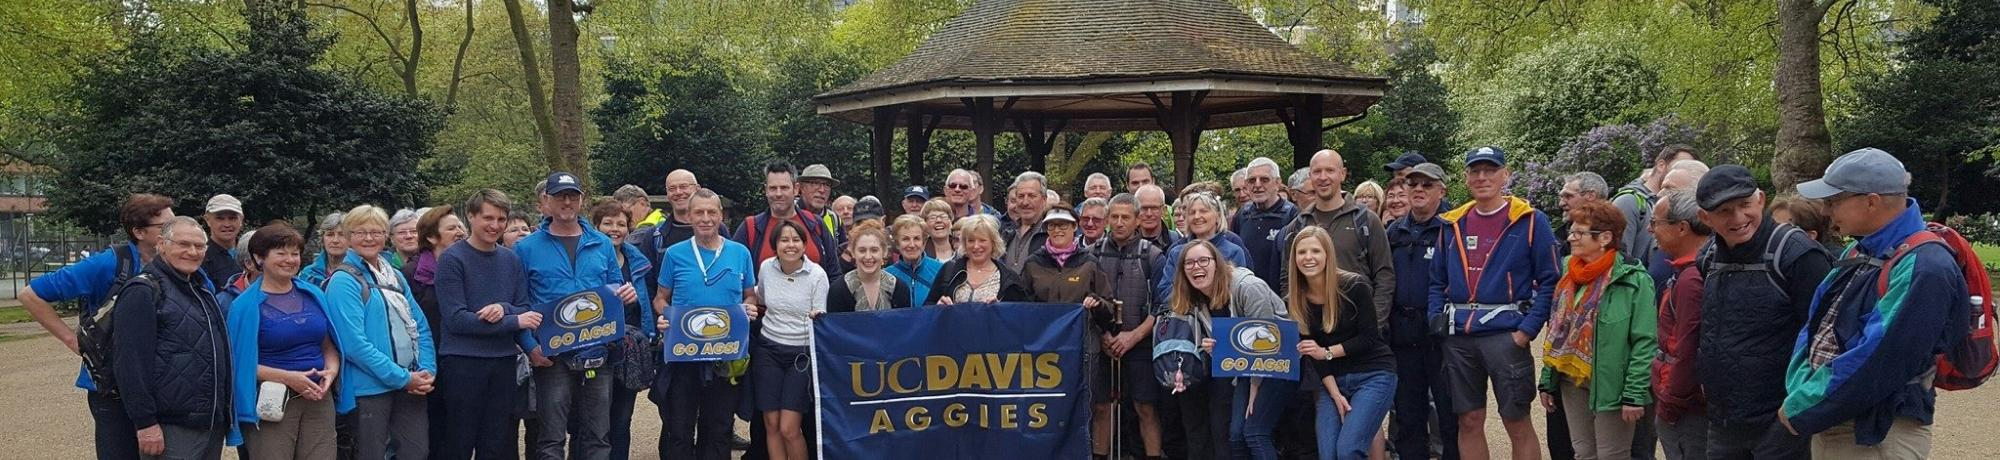 UC Davis Alumni in London at Picnic Day celebration